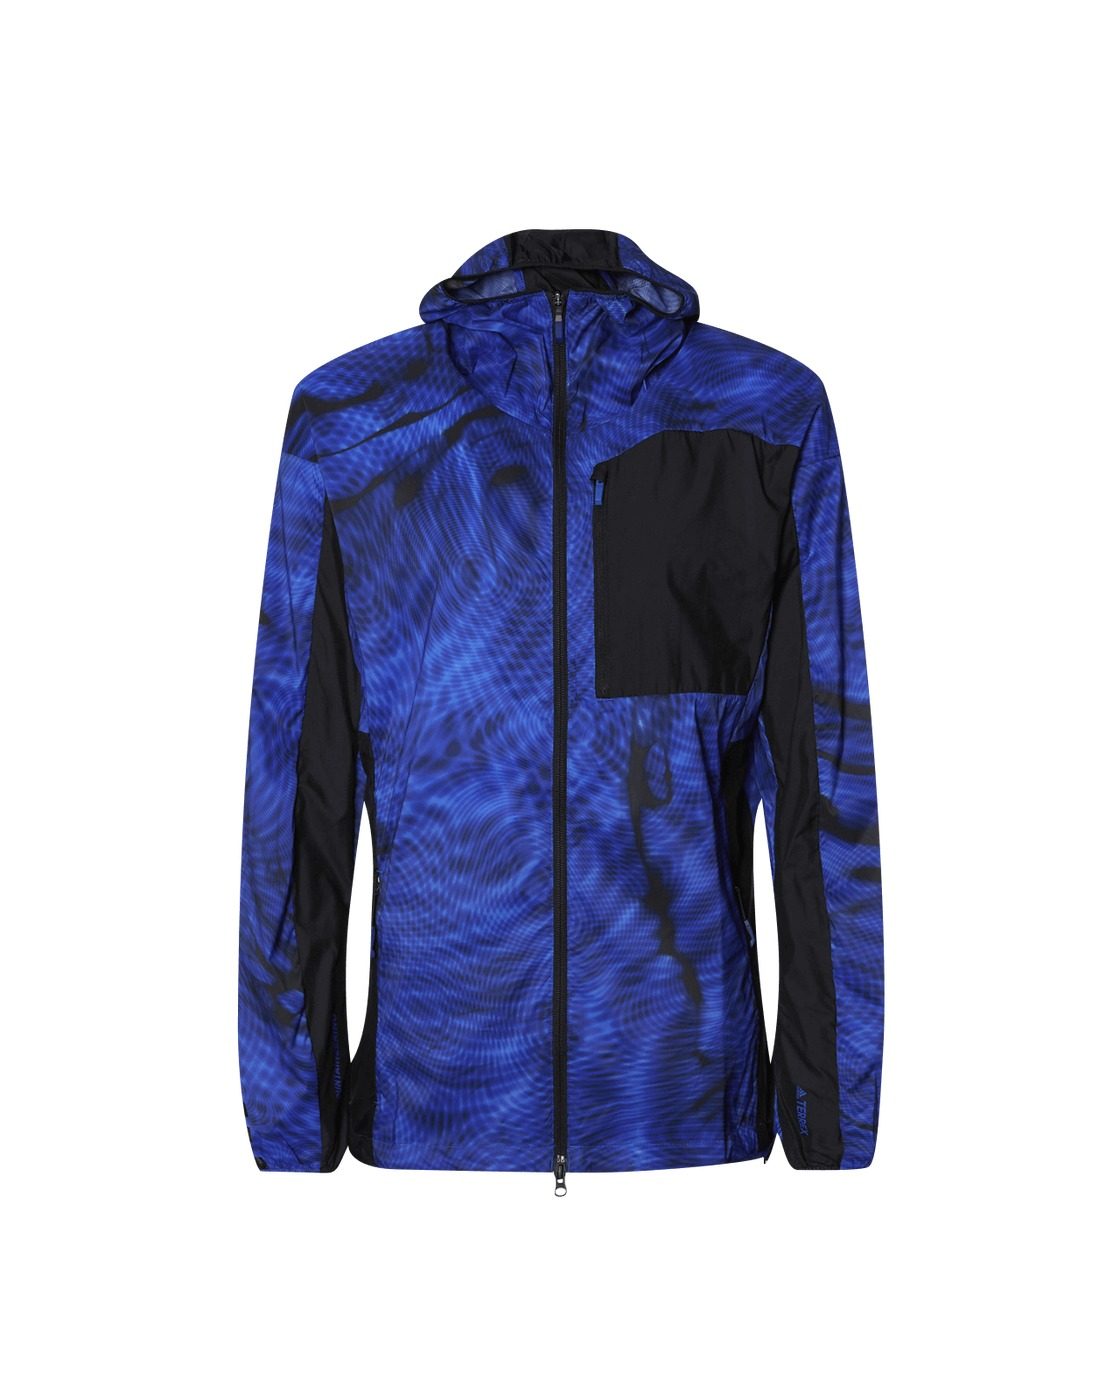 Photo: Adidas Originals Adidas X Terrex White Mountaineering Wind Sportscoat Jacket Royal